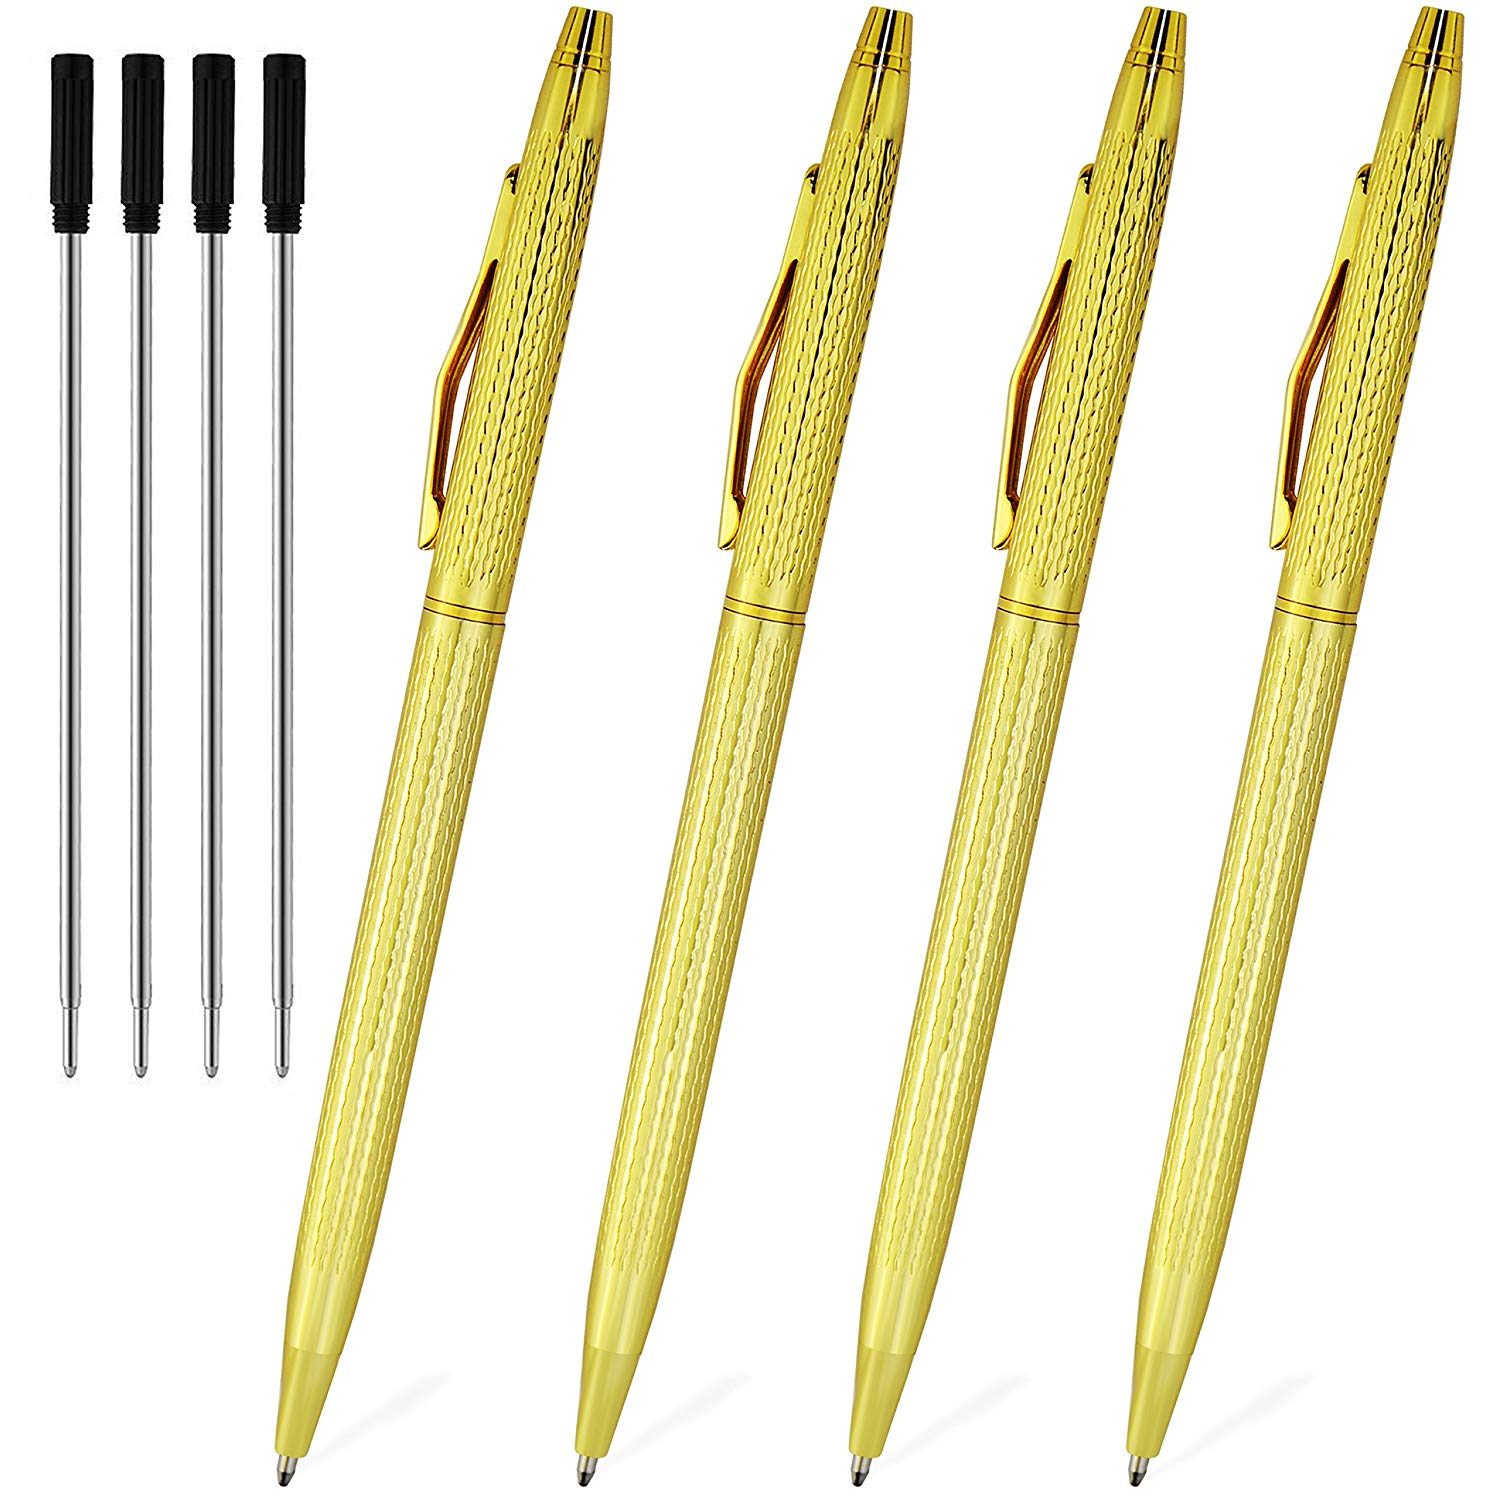 Gold Pens With Black Ink Ballpoint Pens Retractable Pen In Bulk Stainless Steel Metal Pens Ball Point Medium 1.0mm Business Office Grip Nice Gift Pen For Women Girls Men, 4 Pack With 4 Extra Refills